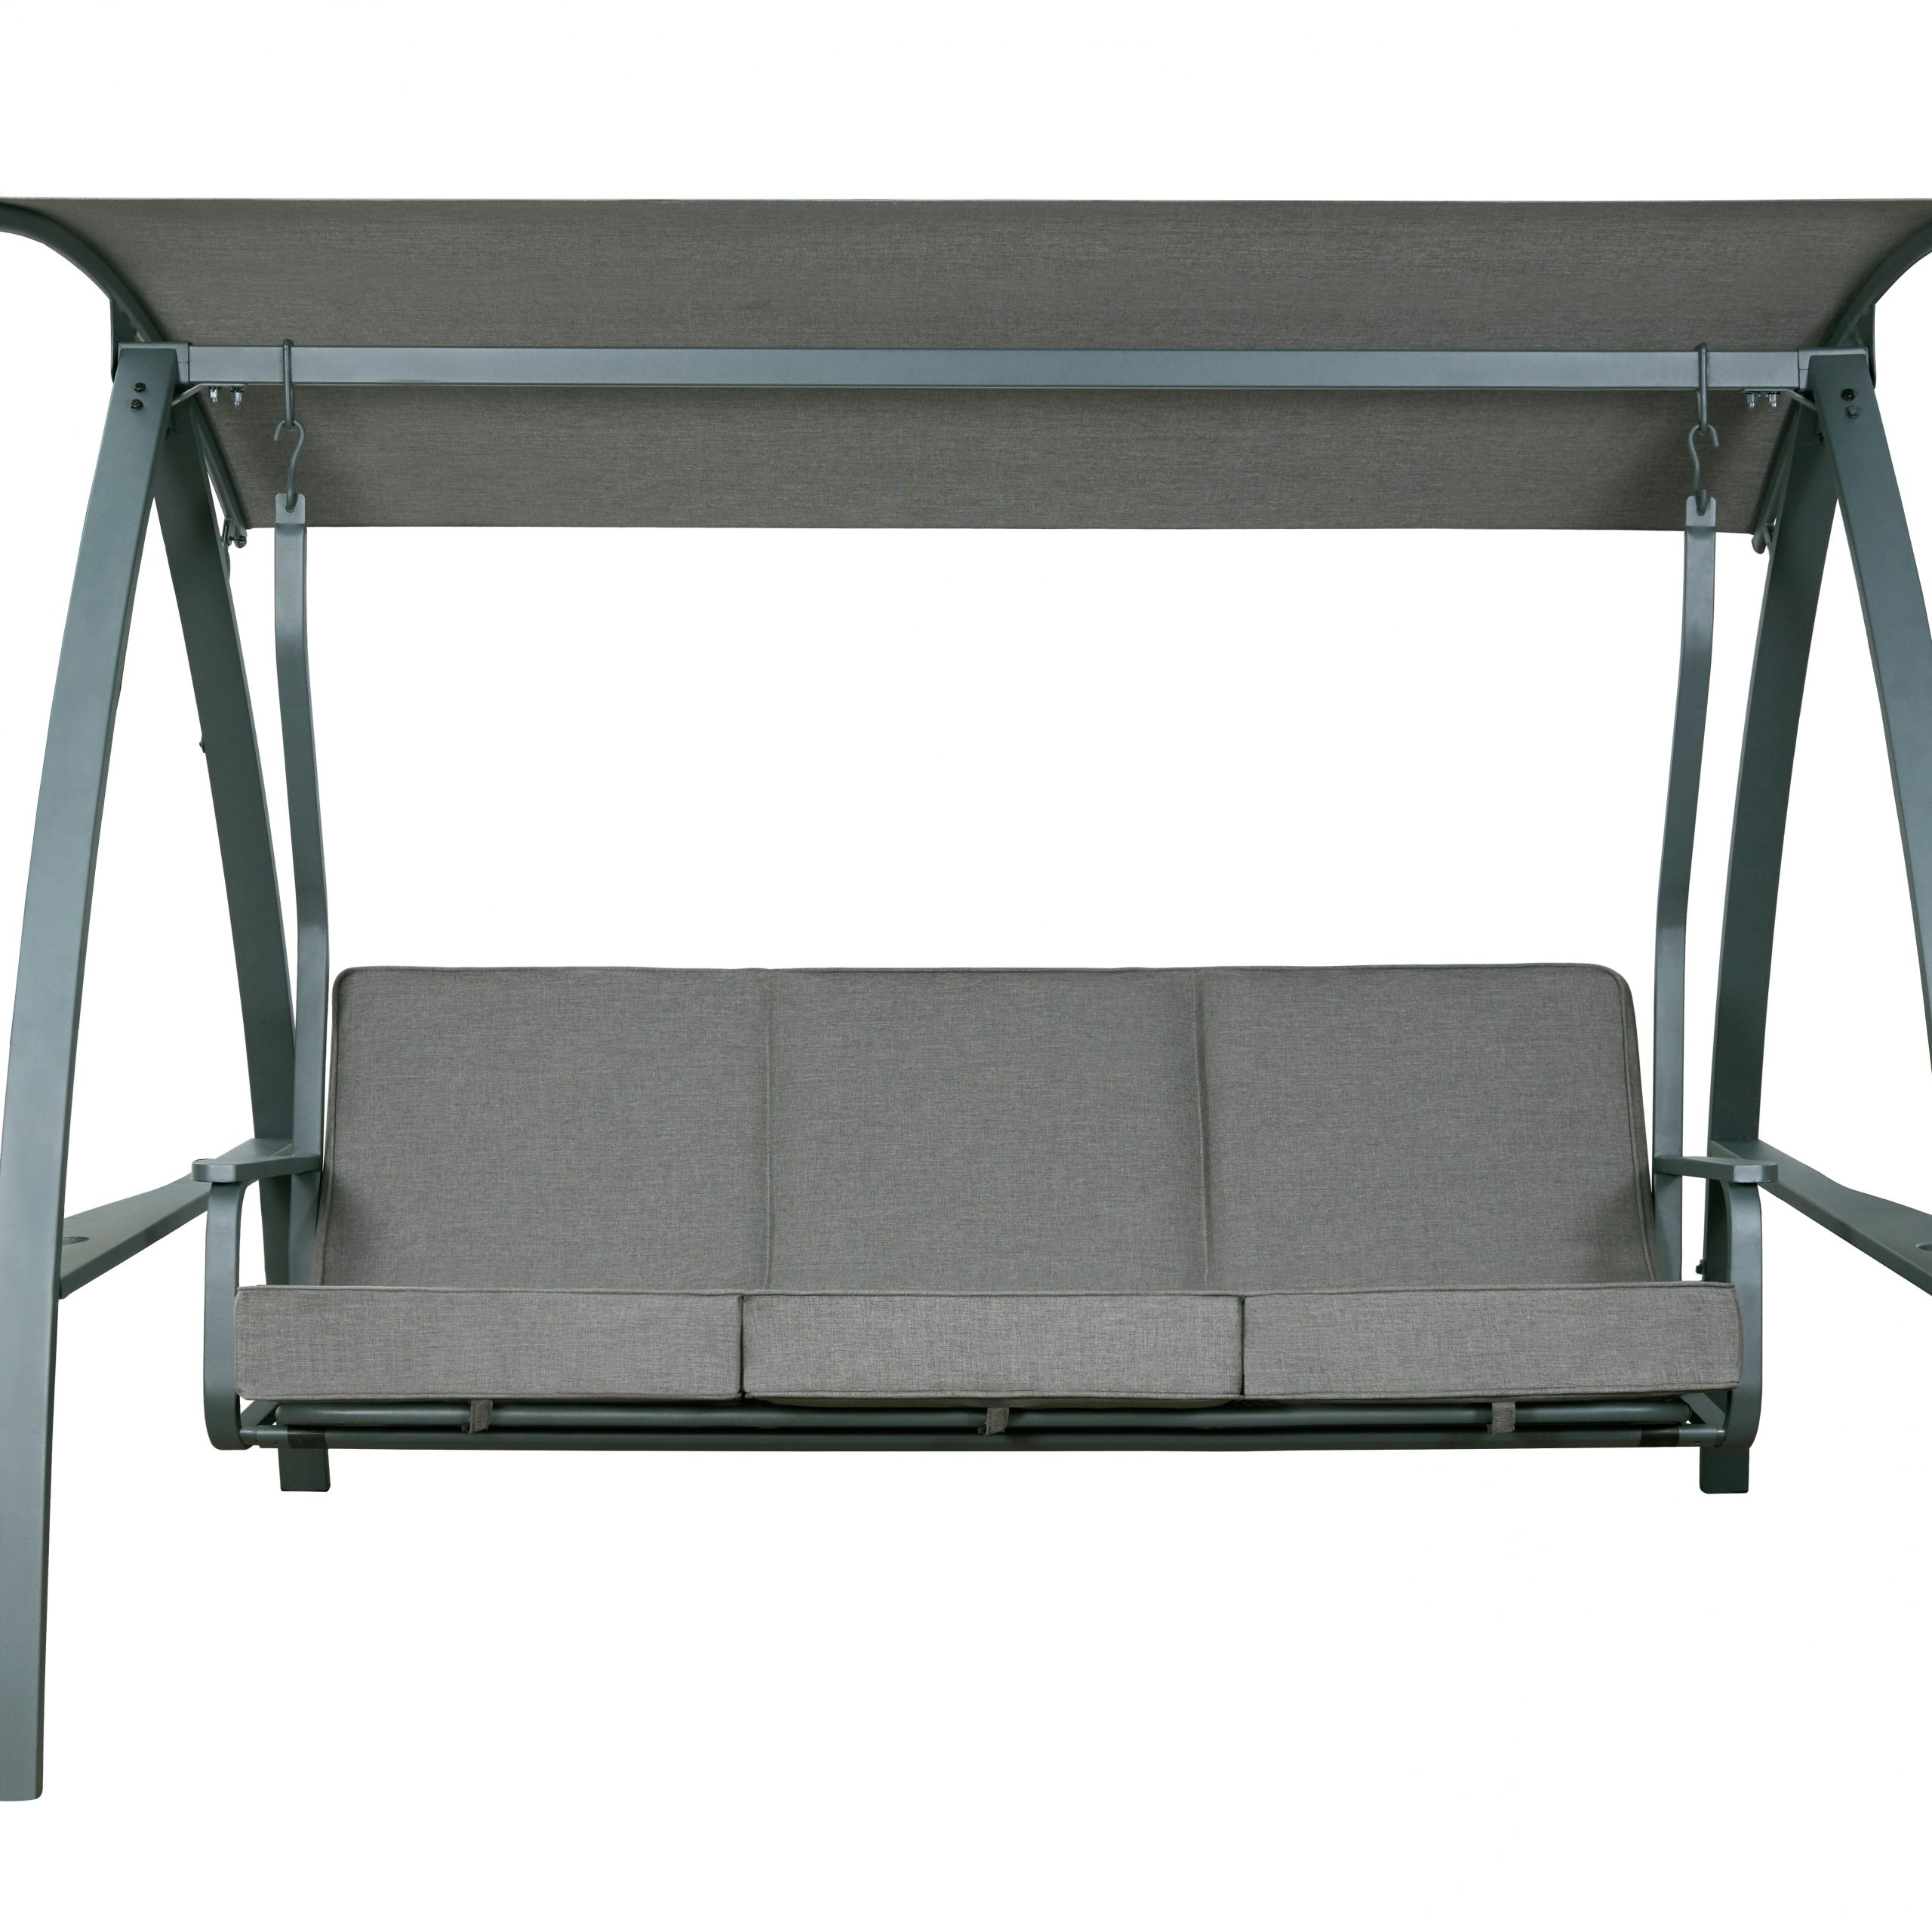 Marquette 3 Seat Daybed Porch Swing With Stand Regarding Daybed Porch Swings With Stand (View 6 of 25)